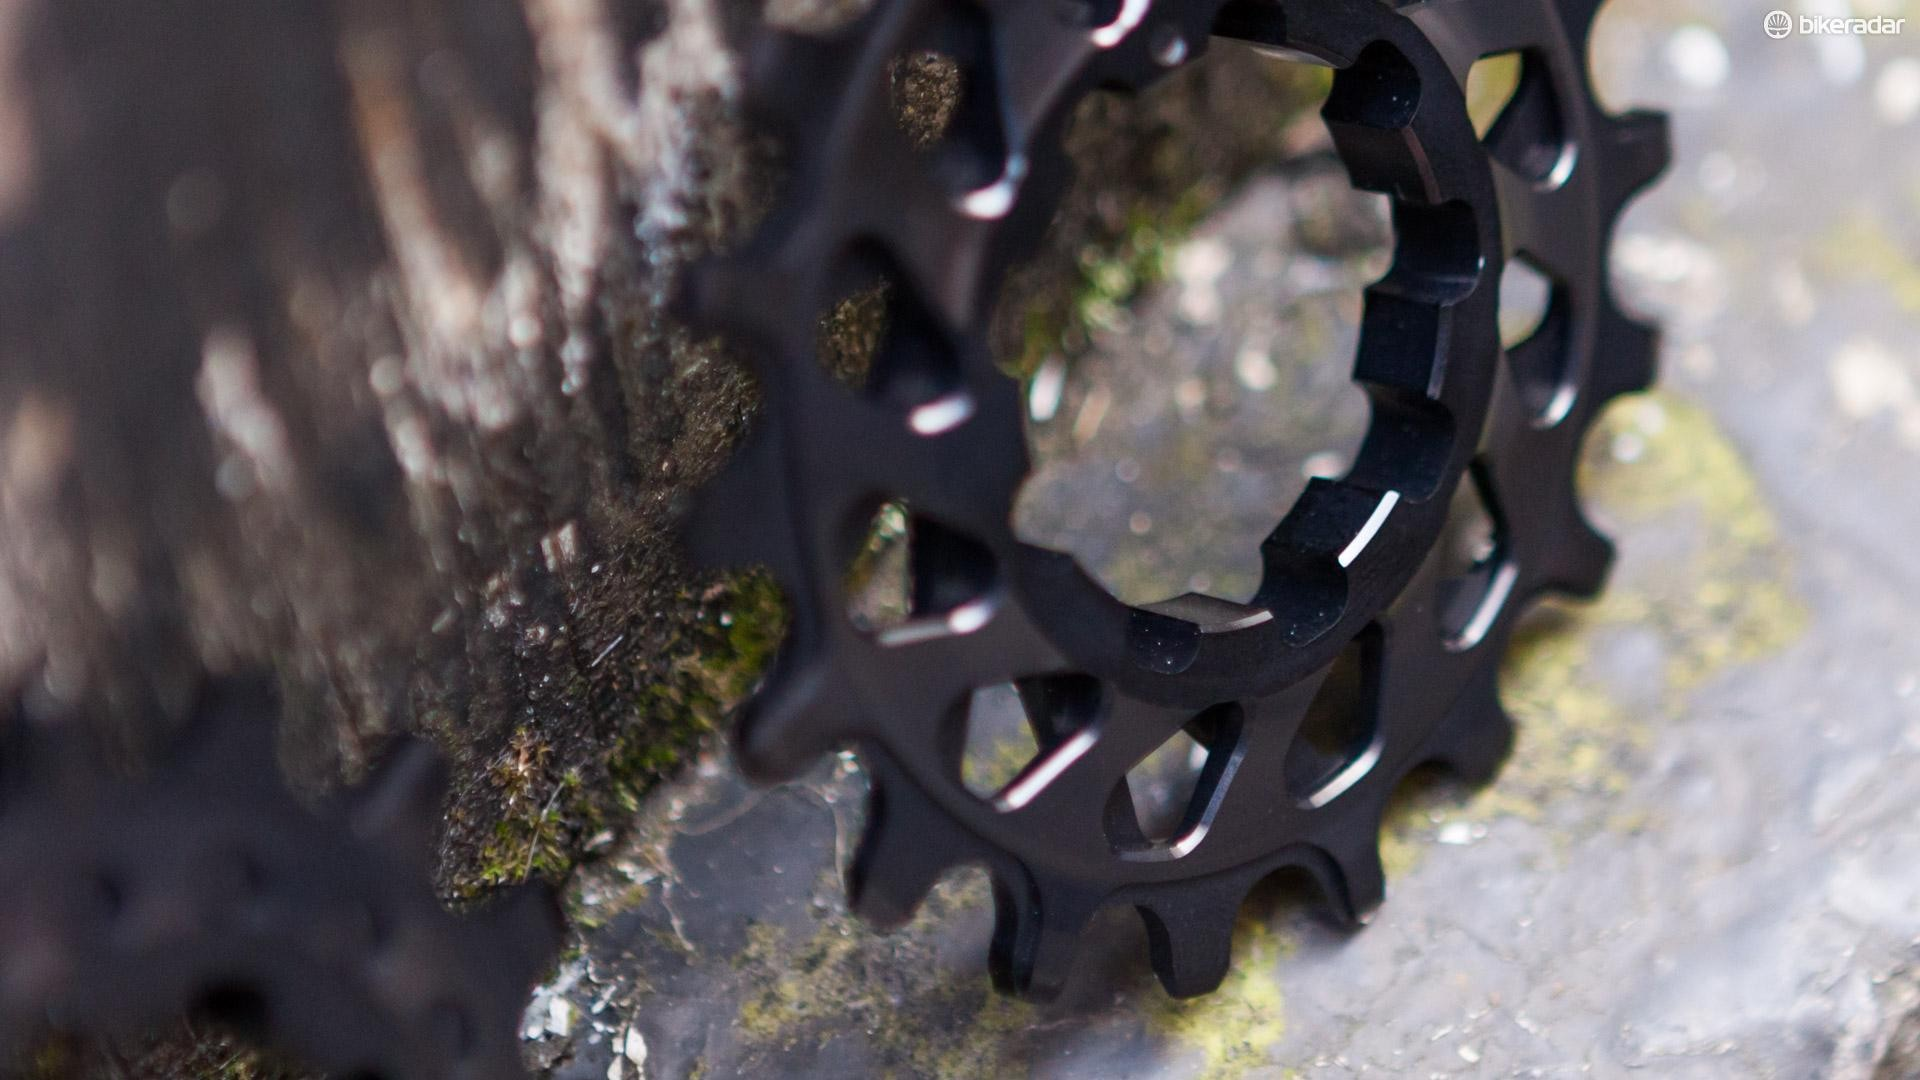 The 7mm wide base helps prevent freehub body indentations